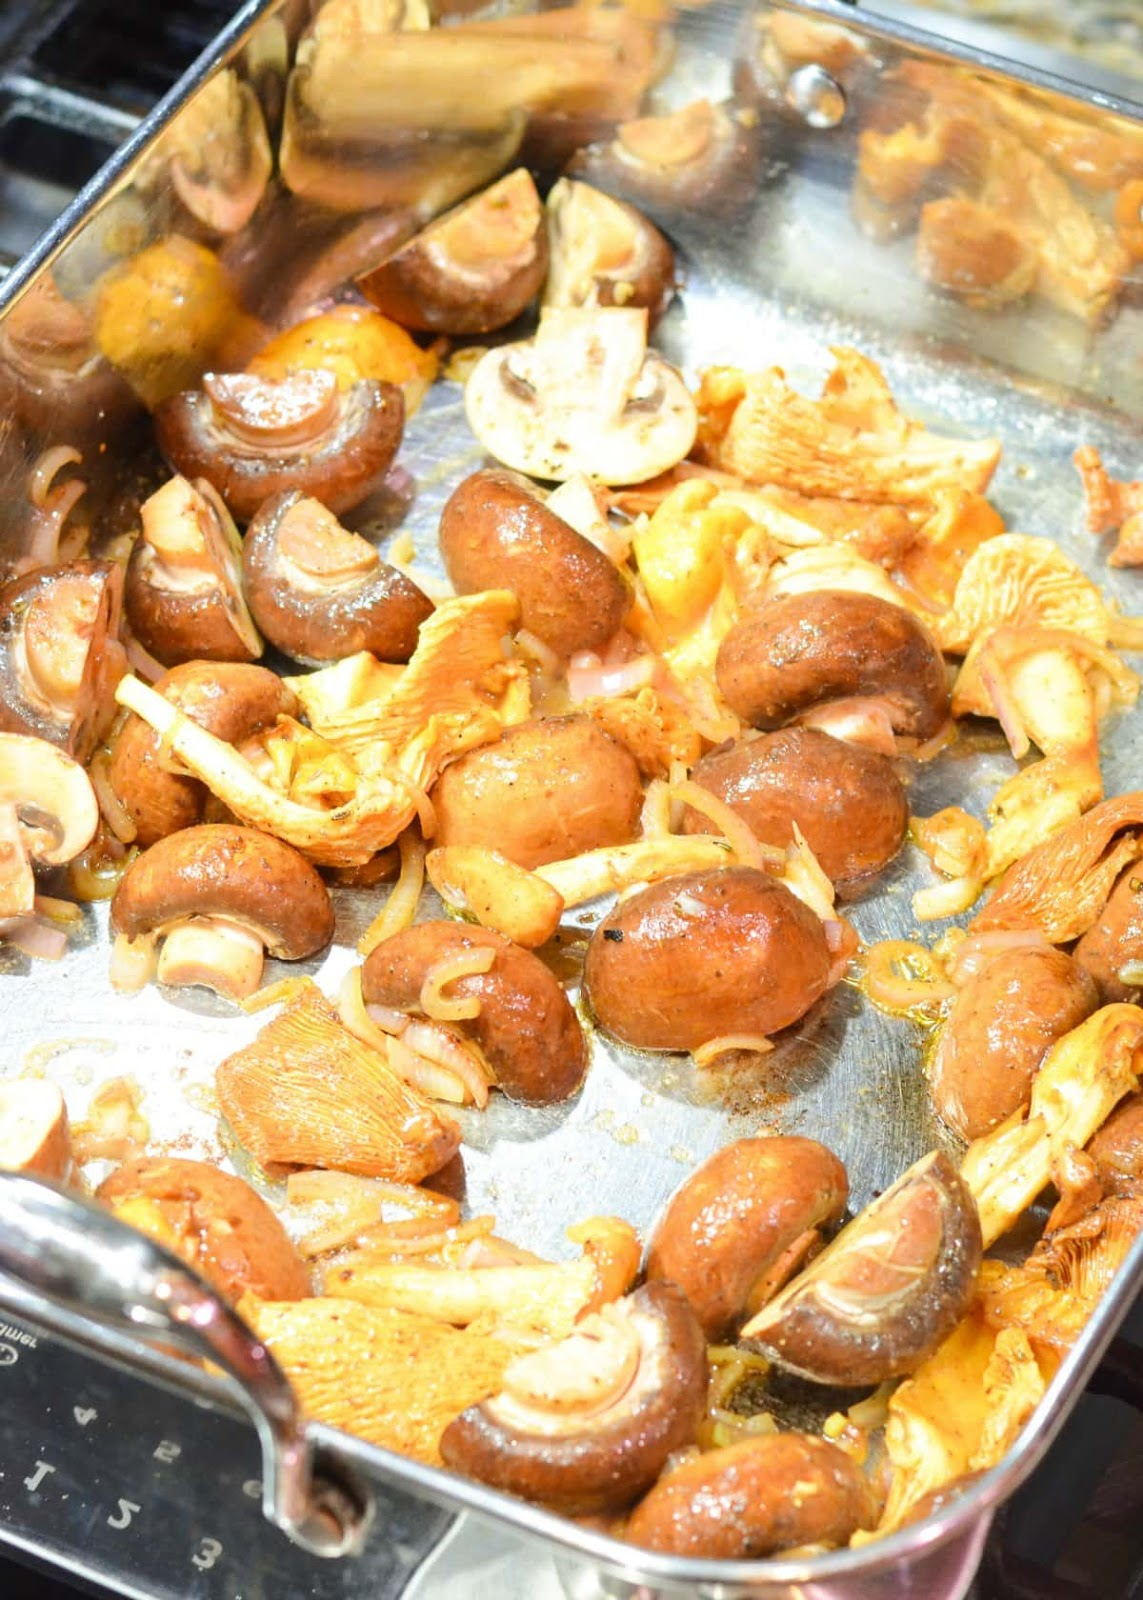 Cremini and Chanterelle Mushrooms in a roasting pan with shallots being sautéed.